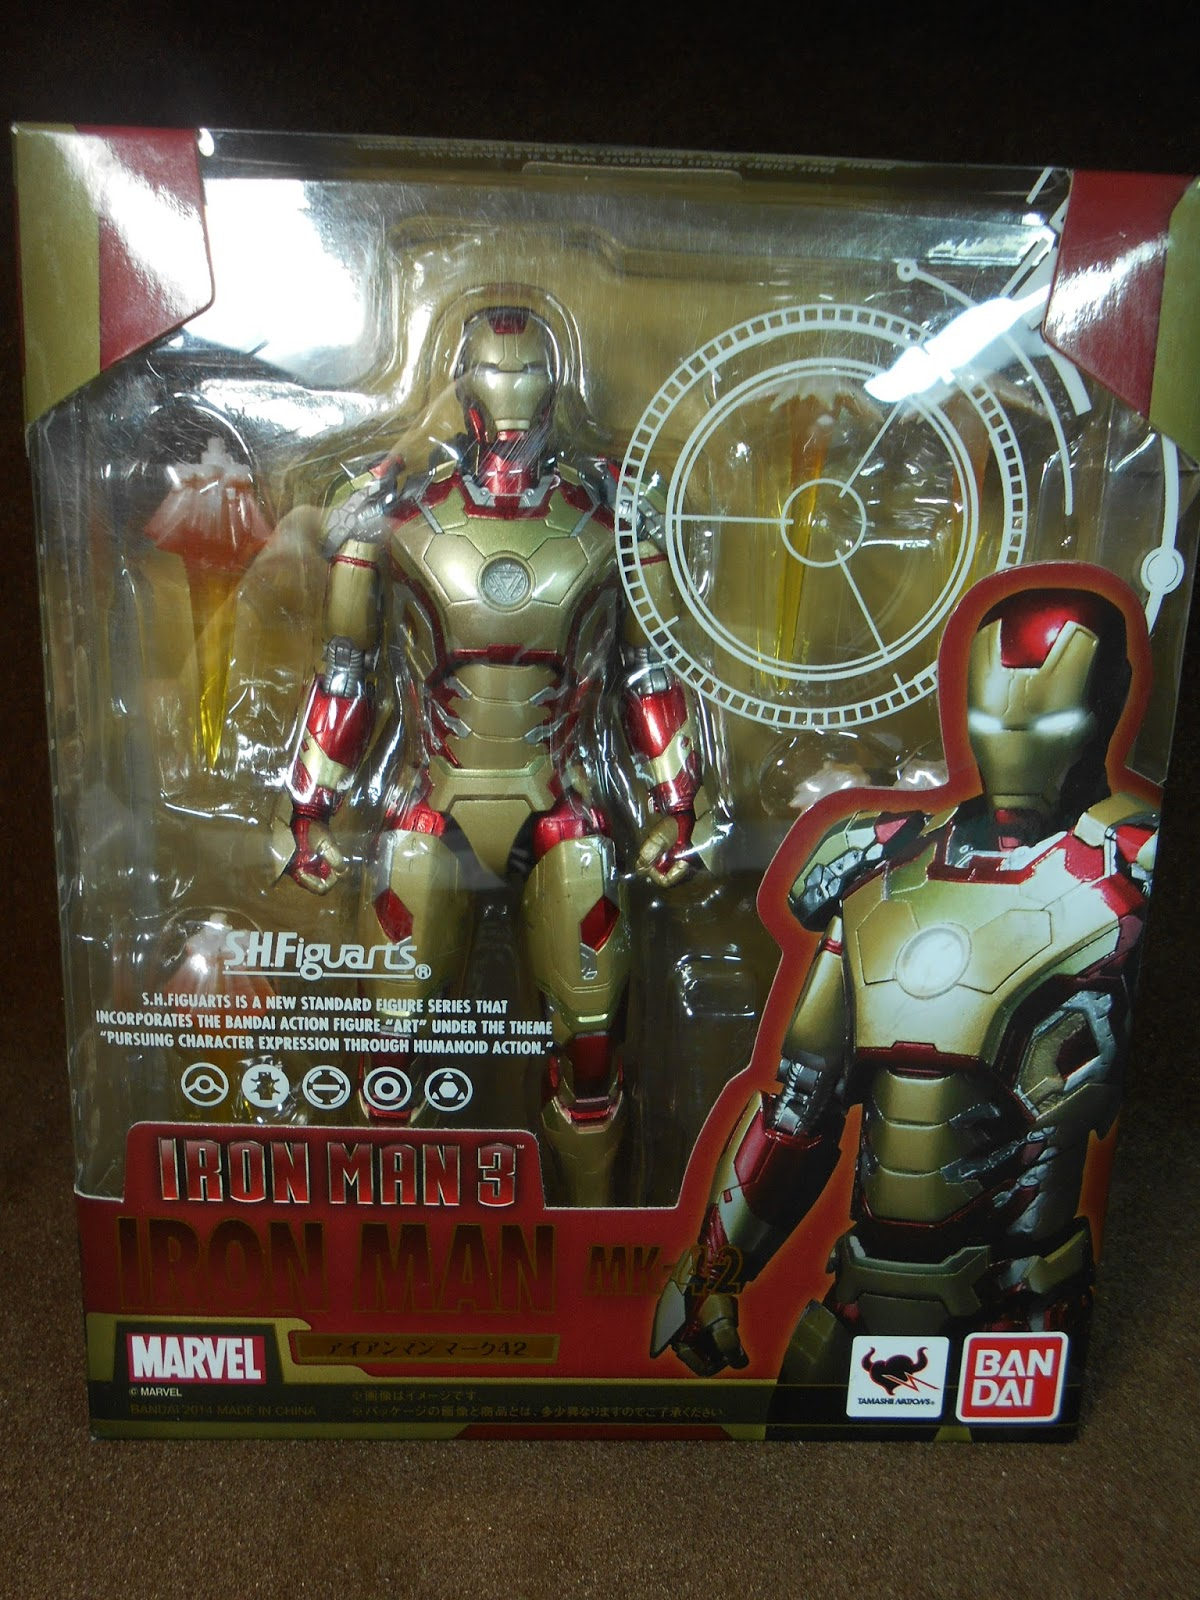 now i dont have the mk 6 figuarts but i can definitely say that the box style in an overall sense was retained from the iron man 2 releases bootleg iron man 2 starring